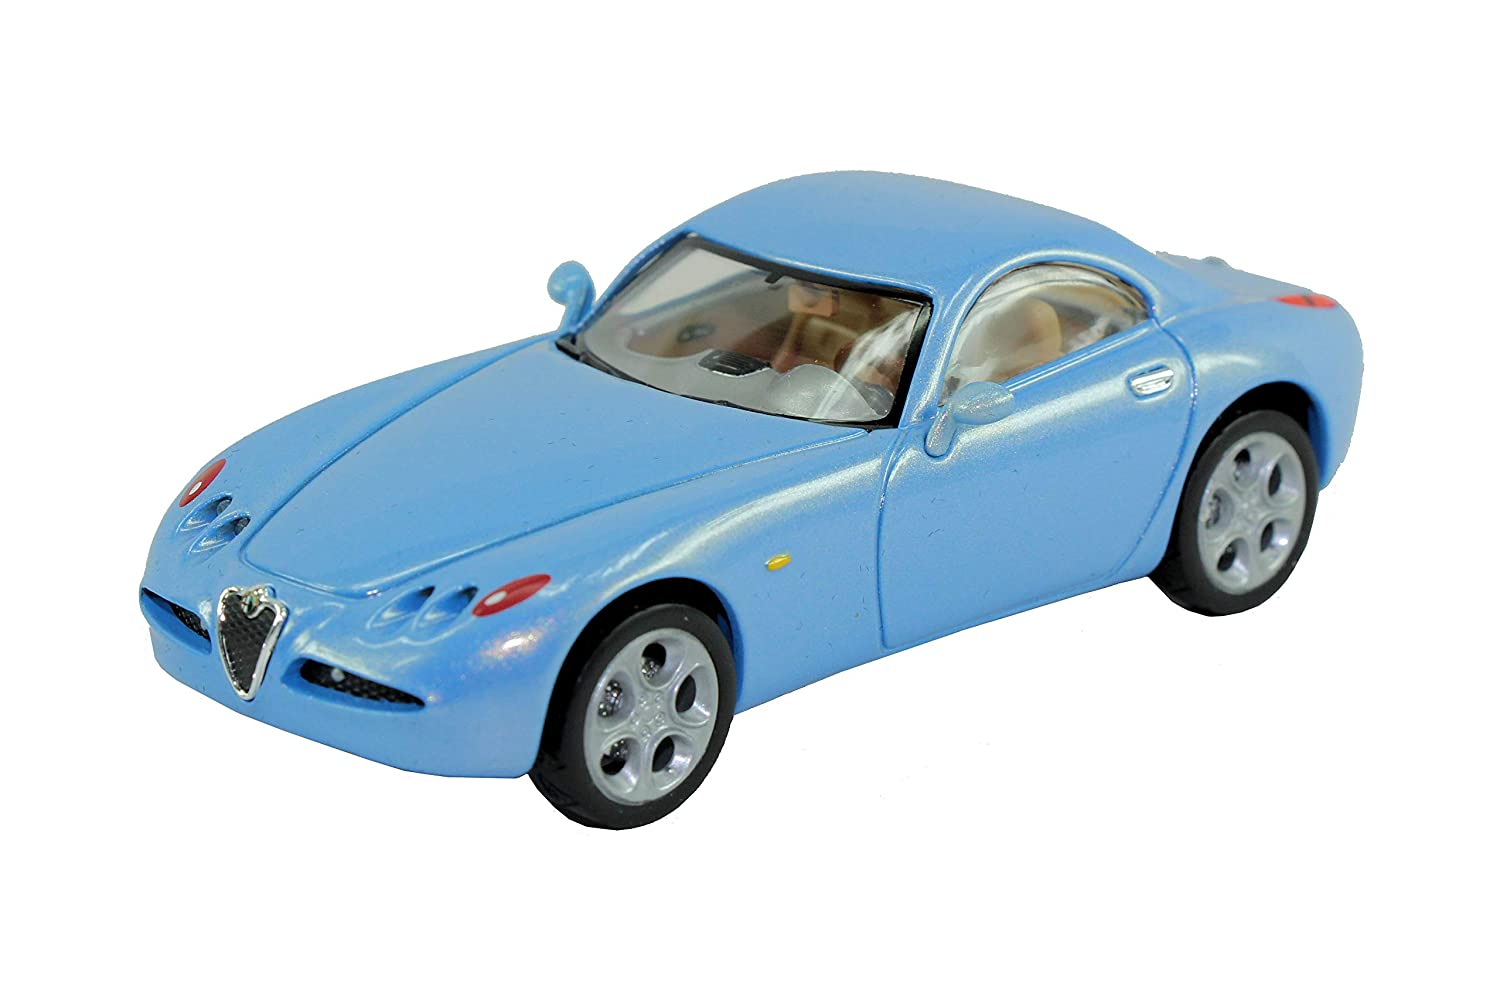 Solido Alfa Romeo 1:43 Scale Nuvola Concept Car in Metallic Light Blue